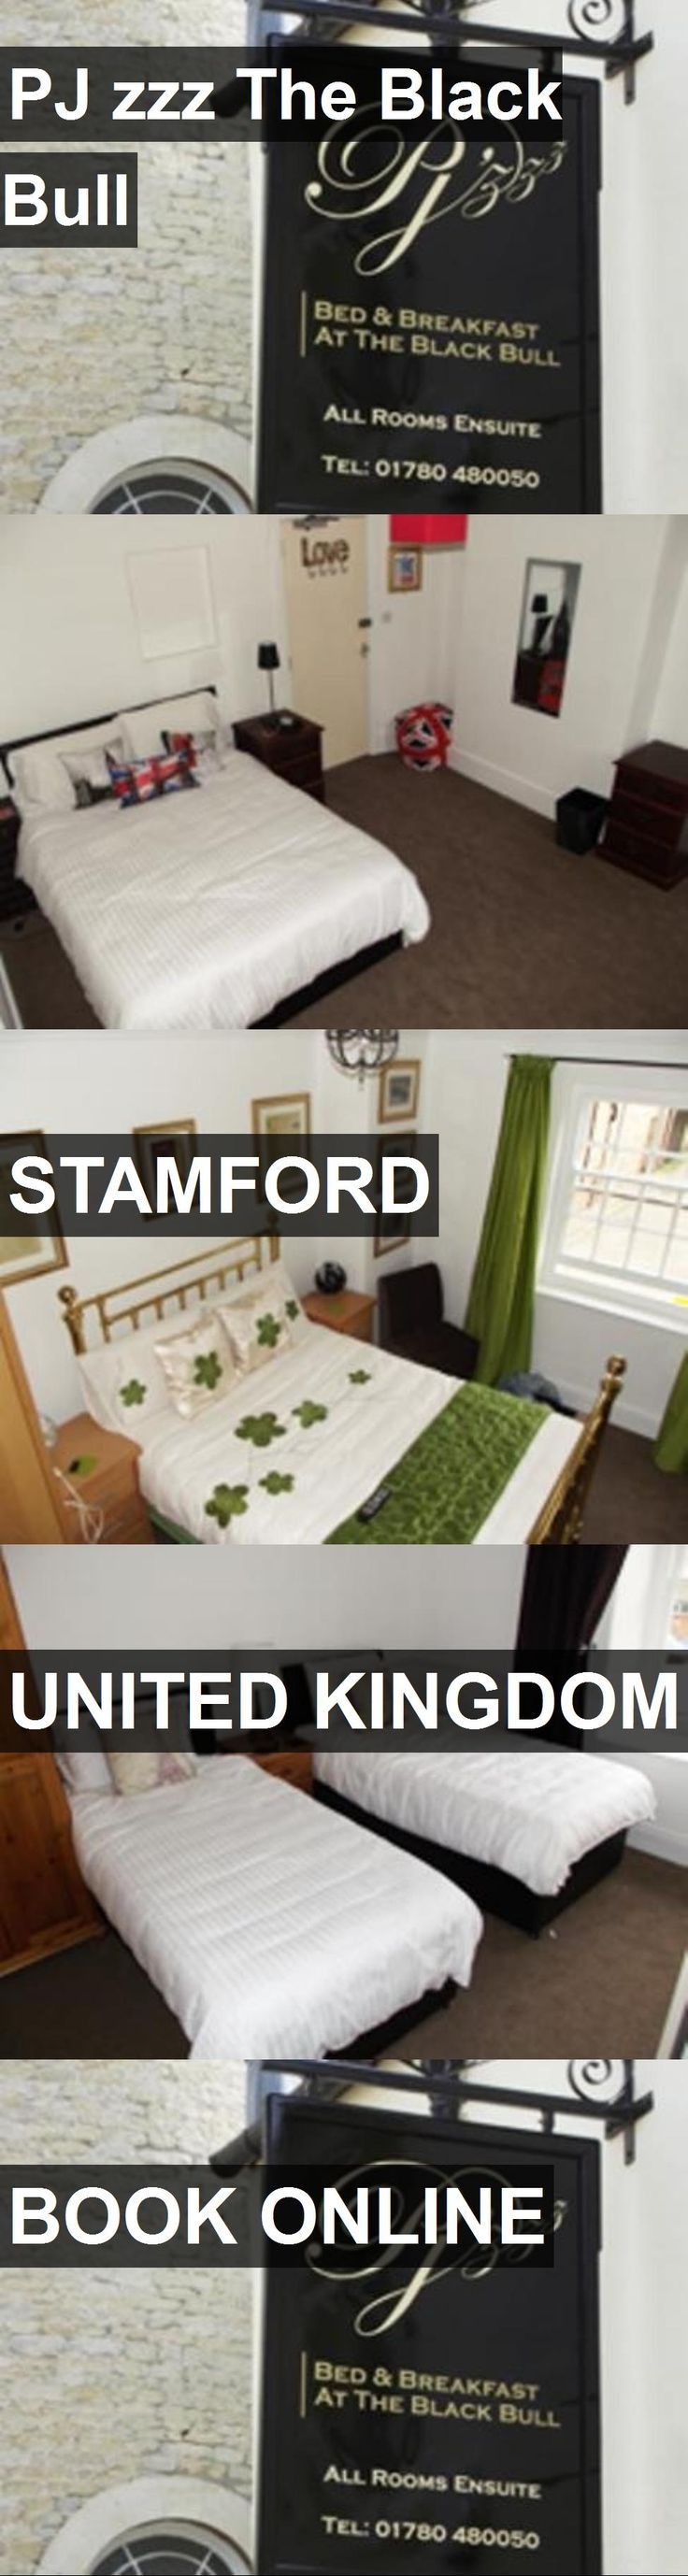 Hotel PJ zzz The Black Bull in Stamford, United Kingdom. For more information, photos, reviews and best prices please follow the link. #UnitedKingdom #Stamford #PJzzzTheBlackBull #hotel #travel #vacation